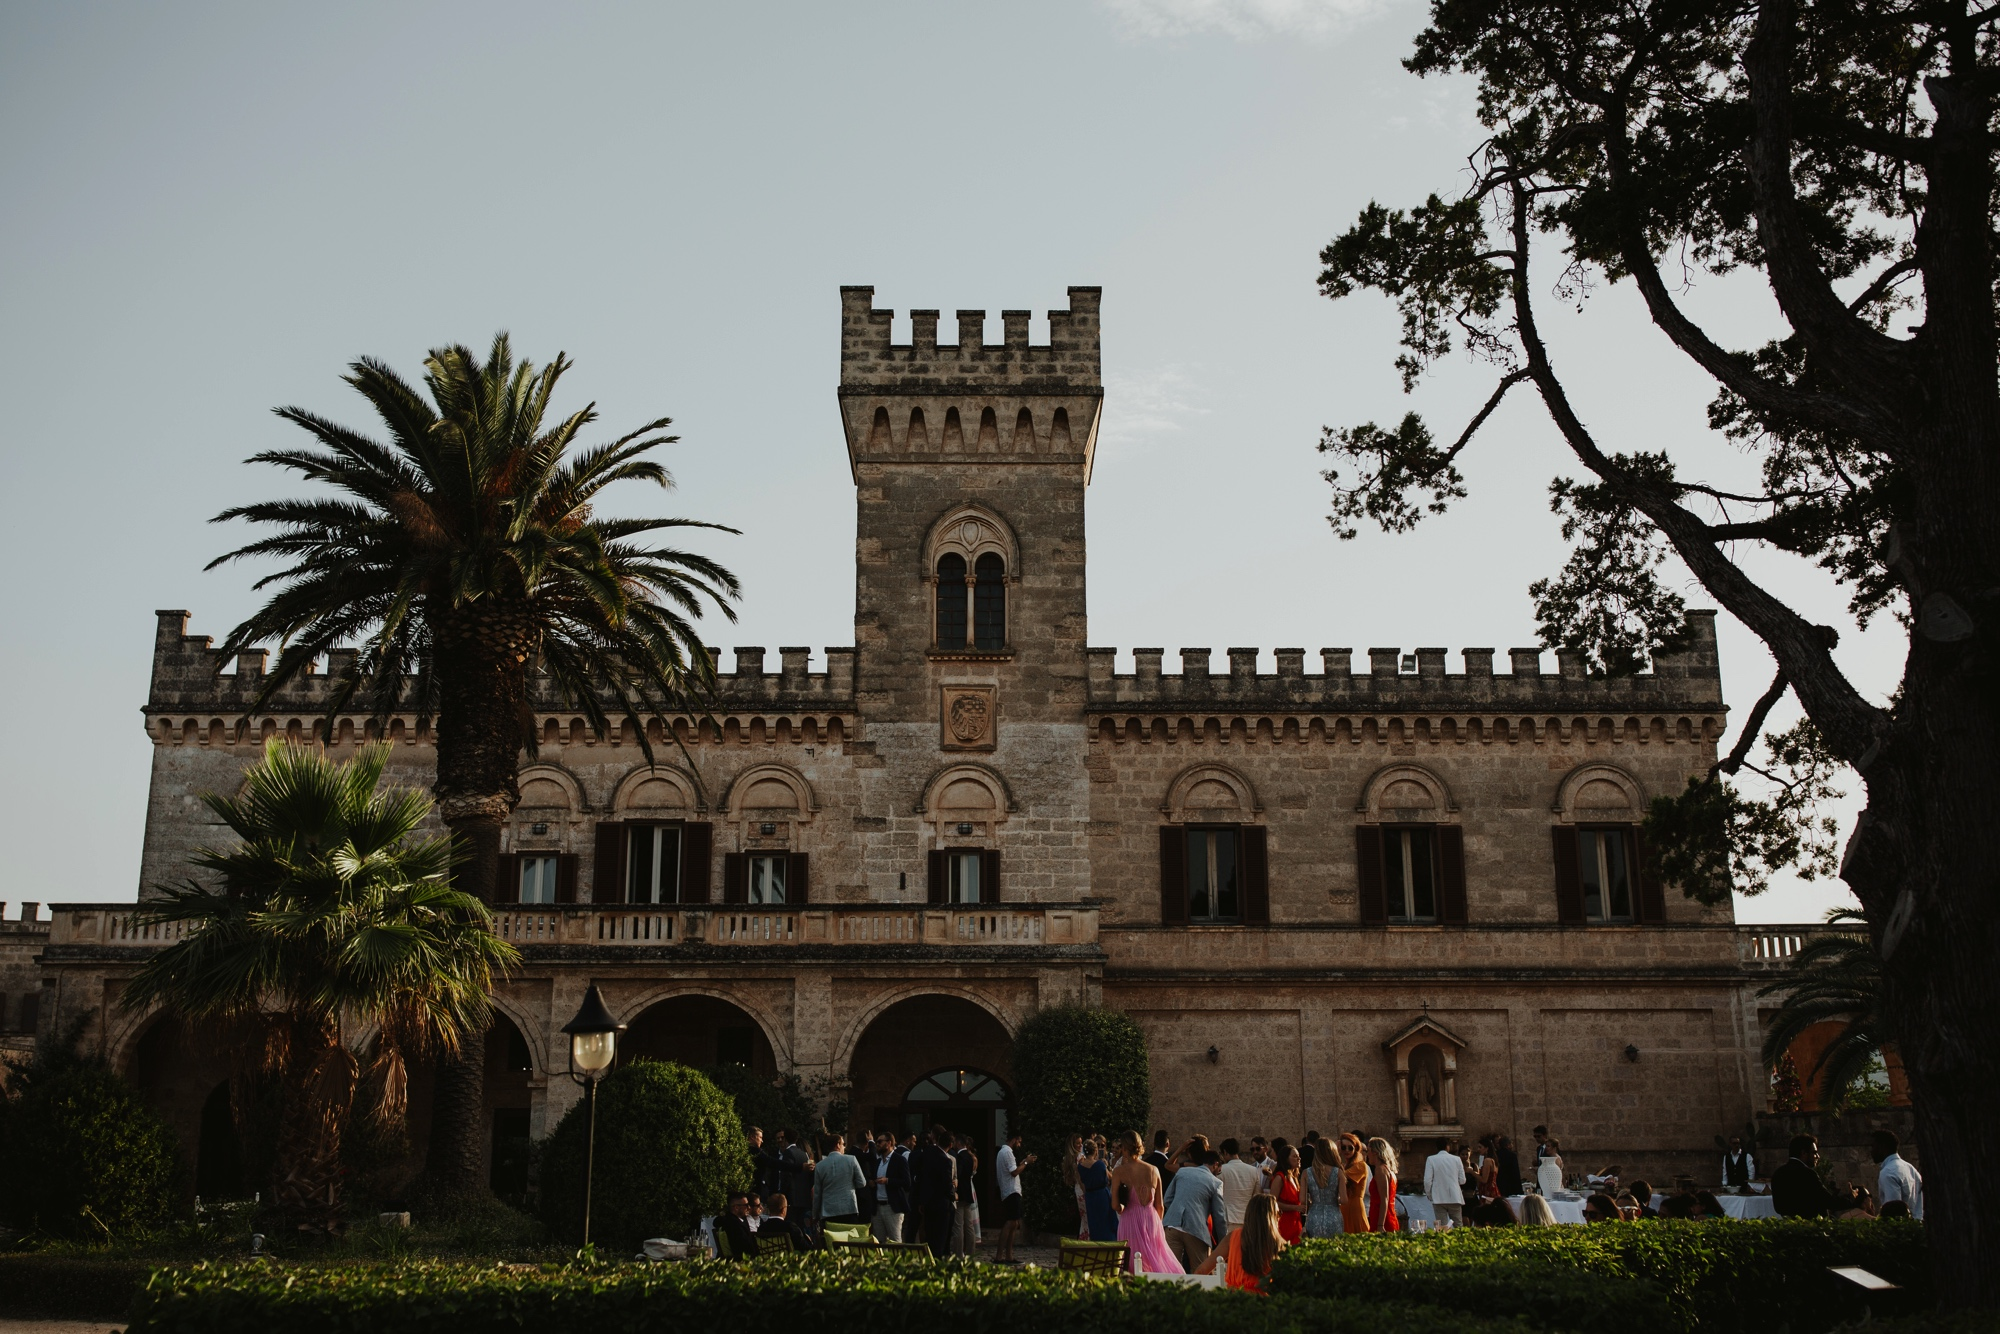 0000000060_Rob and Lucy-547_Weddings_Destination_Italy_got_Just_Engaged.jpg